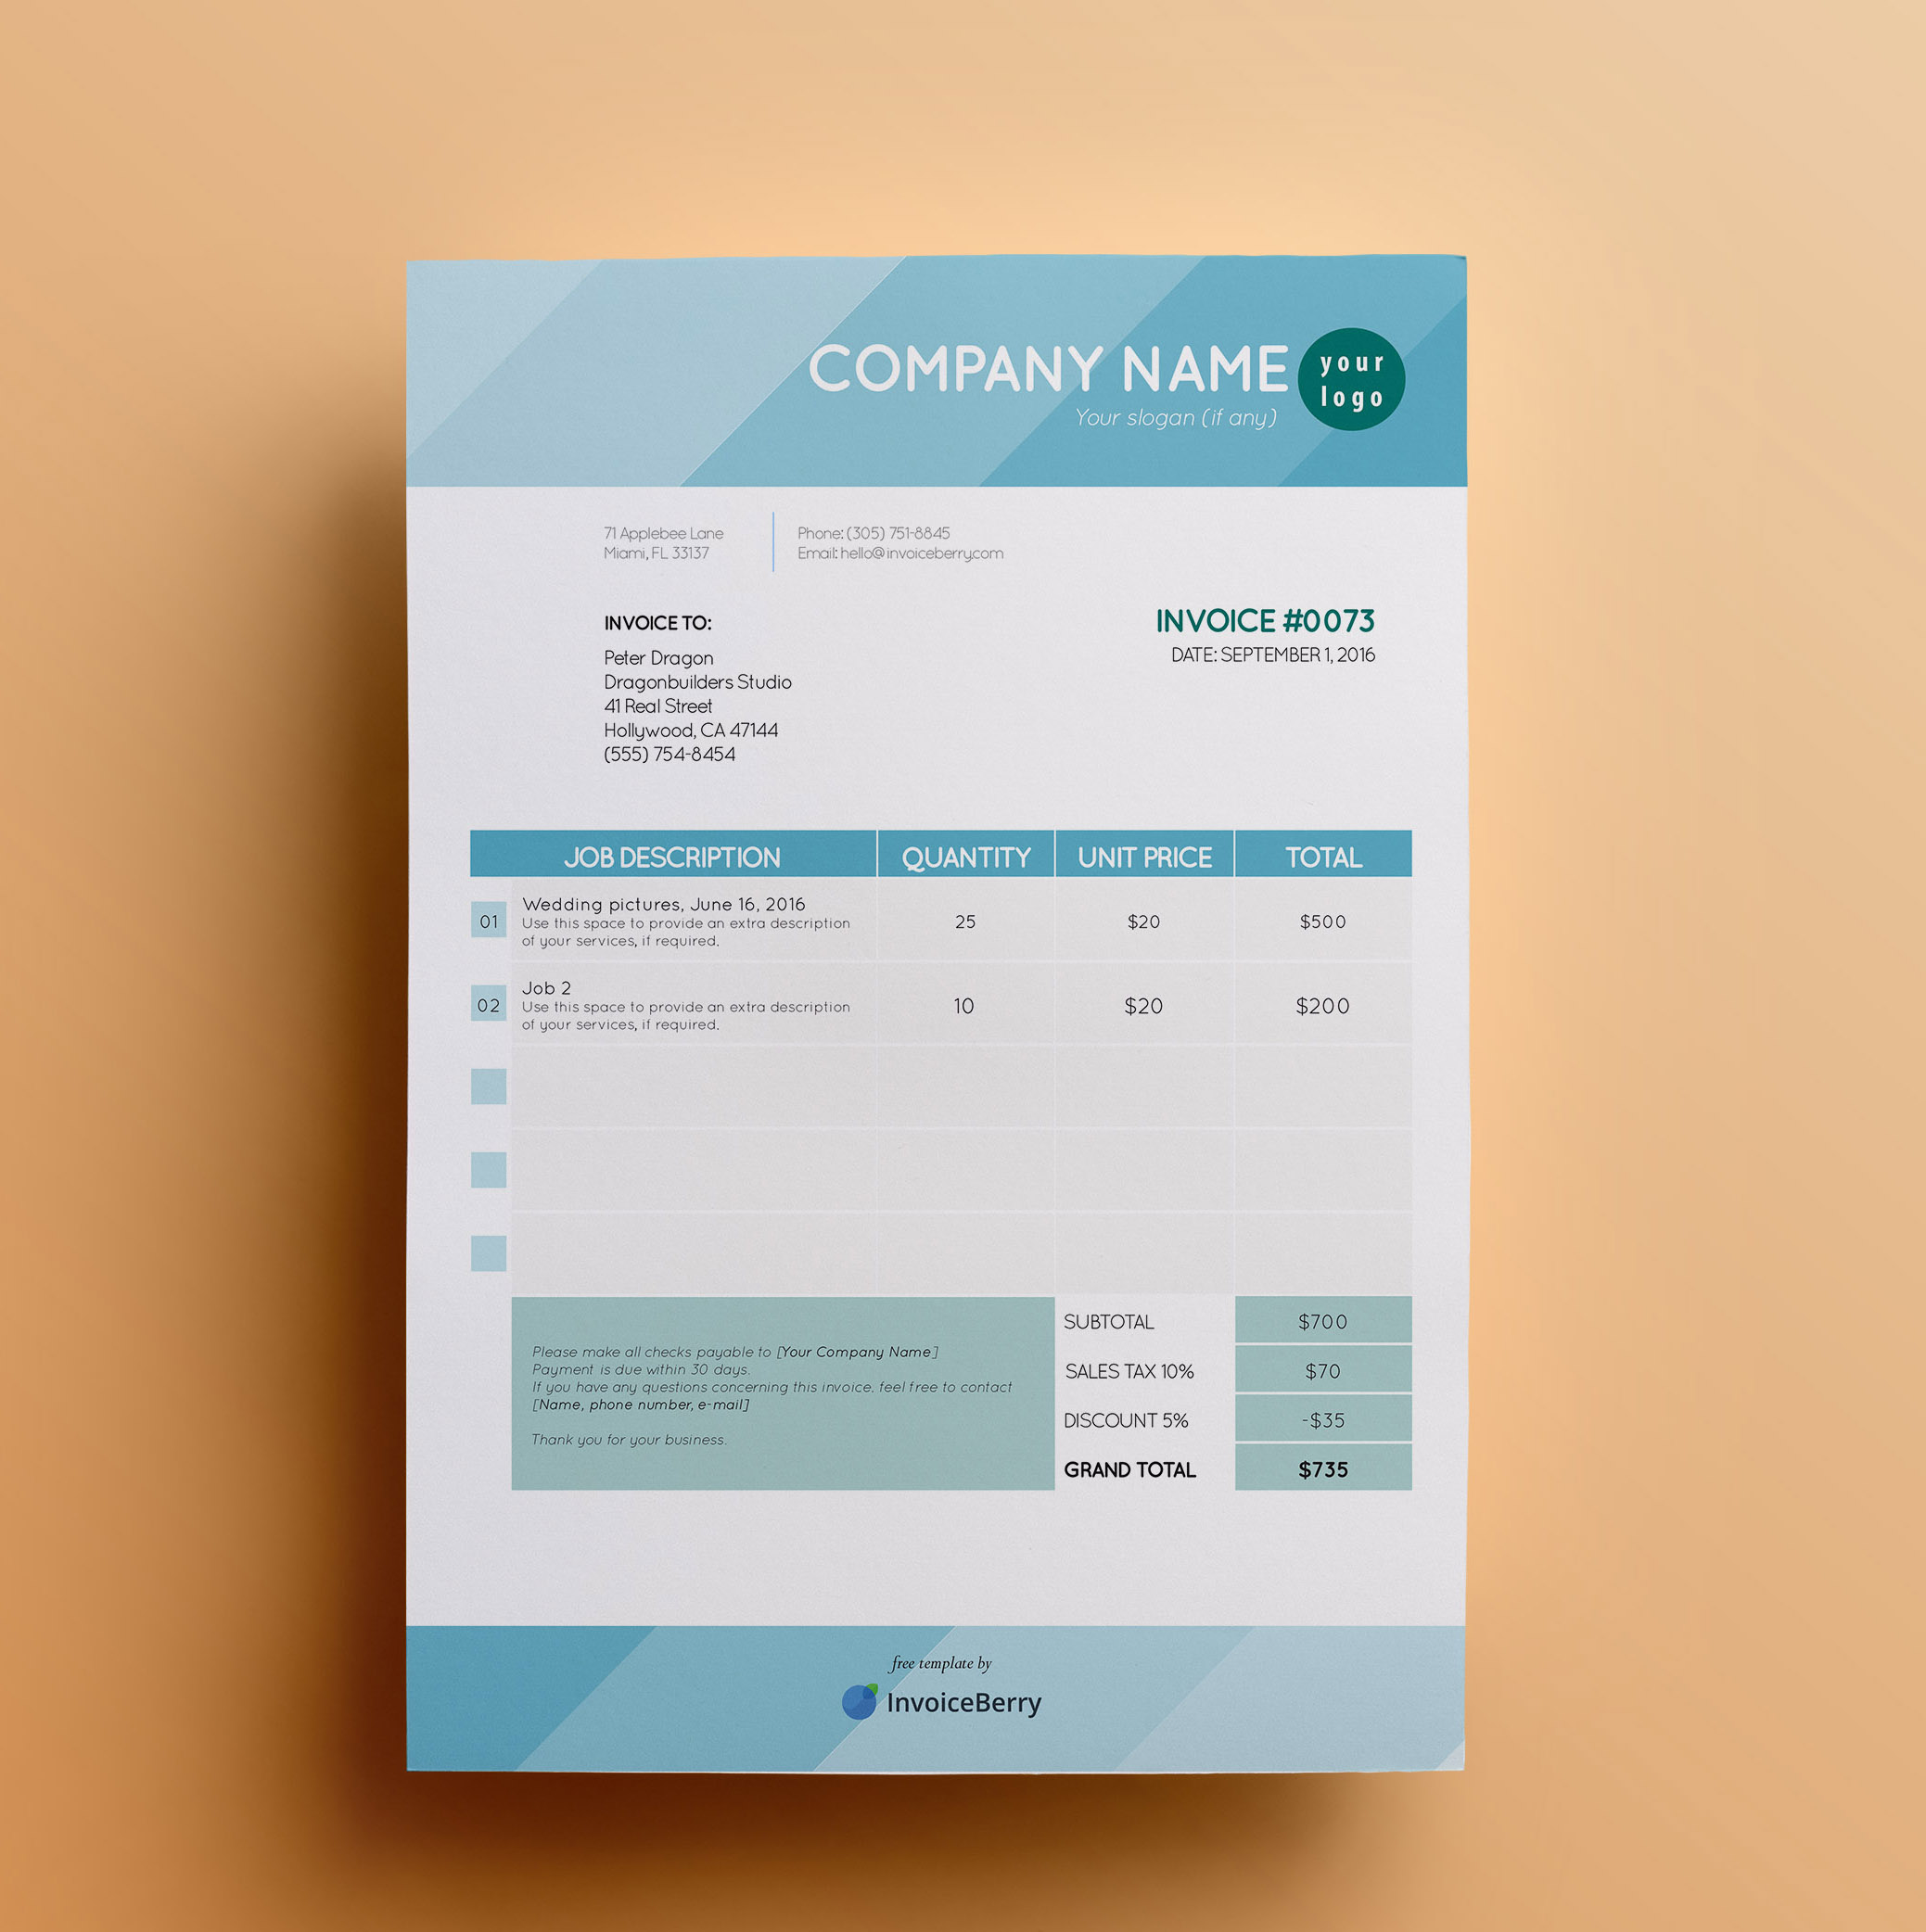 Free Invoice Templates by InvoiceBerry The Grid System – Indesign Invoice Template